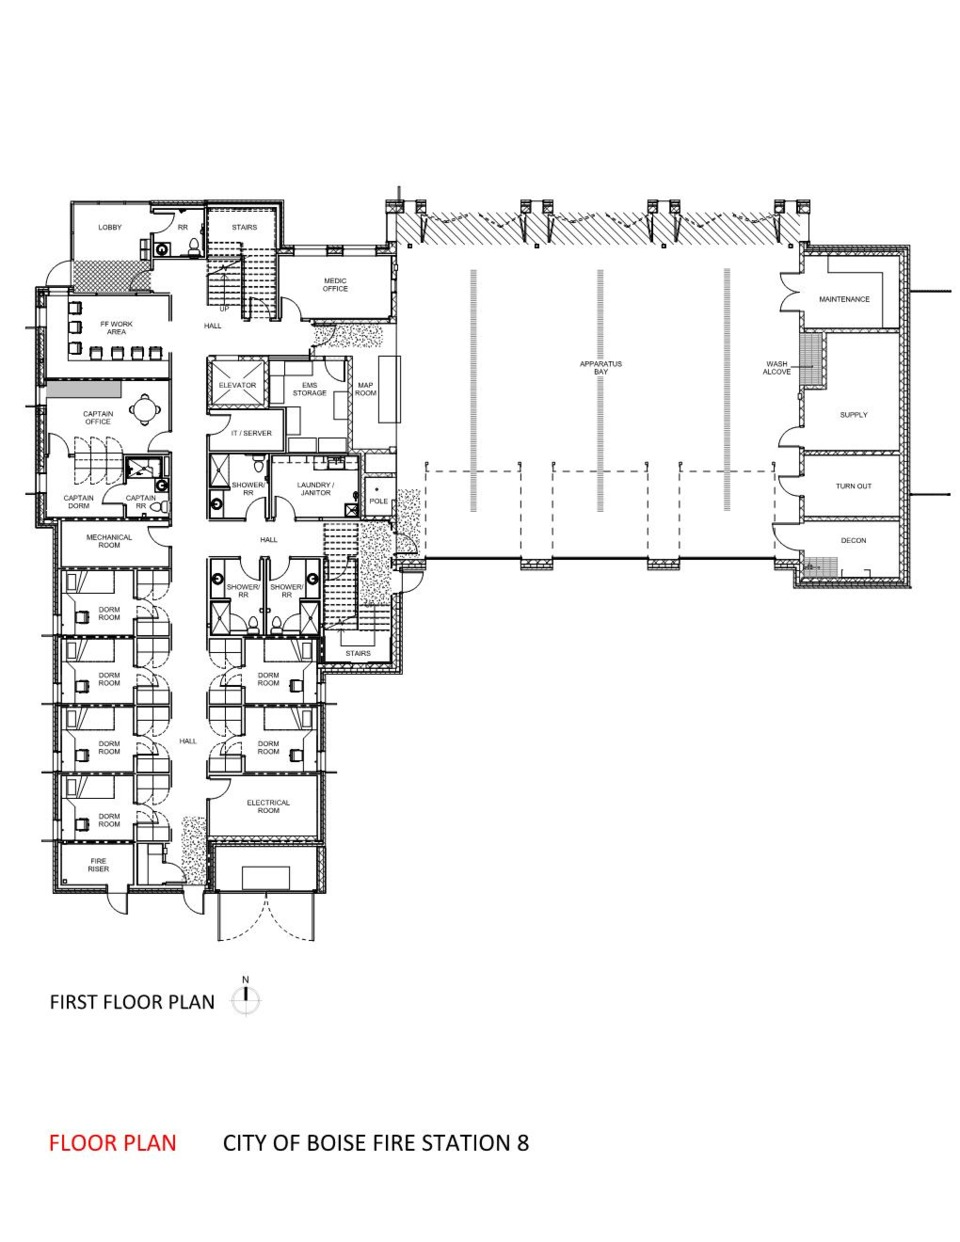 Fire station designs boise fire station 8 firehouse architects and plans for Fire station floor plans design